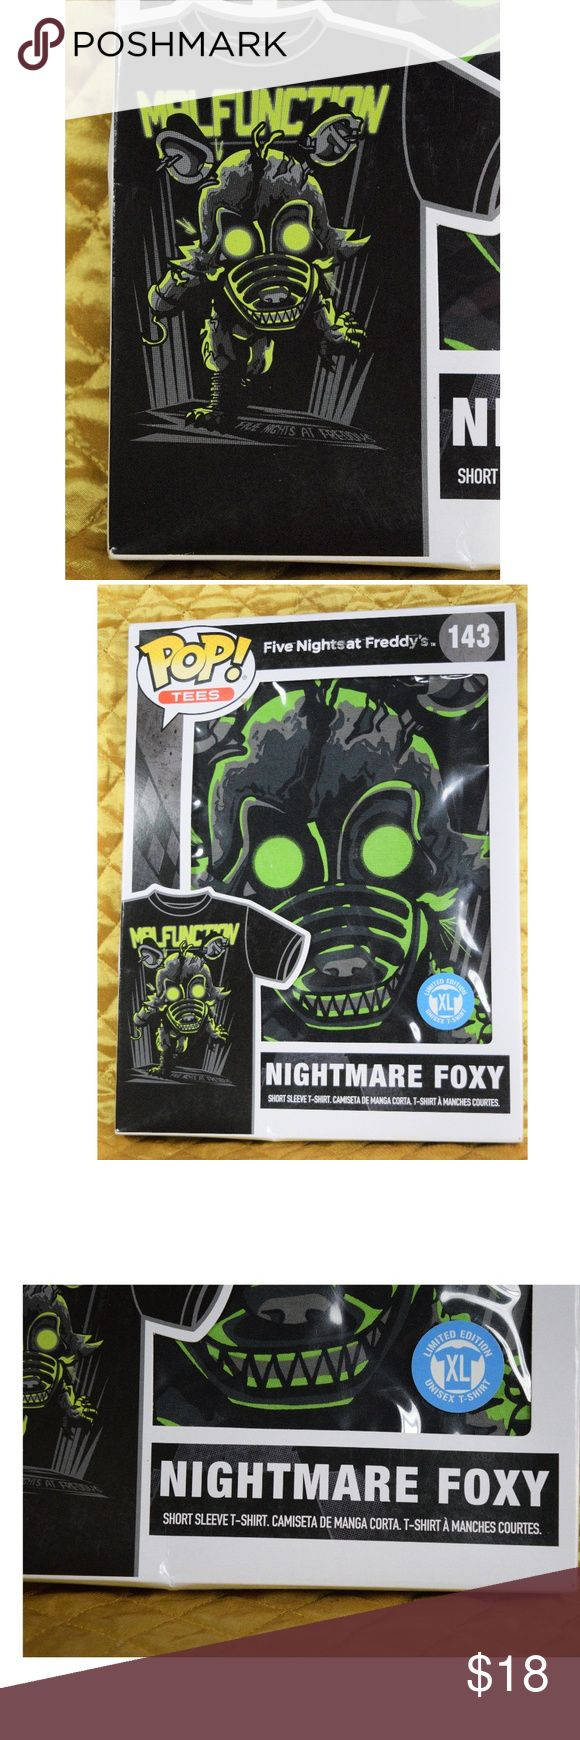 POP Tees Five Nights at Freddy's NIGHTMARE FOXY XL New POP! Five Nights at Freddy's NIGHTMARE FOXY T-Shirt! The tape has been pulled up once before, but it the box has never been fully opened. Unisex size XL. See photos for measurements!  **If you appreciate old school quality - you're in the right place. We don't just sell products, we put time & work into them. We ship FAST, usually within 1 business day! Thanks for Poshing in my Closet! 🙂😘 POP Shirts Tees - Short Sleeve